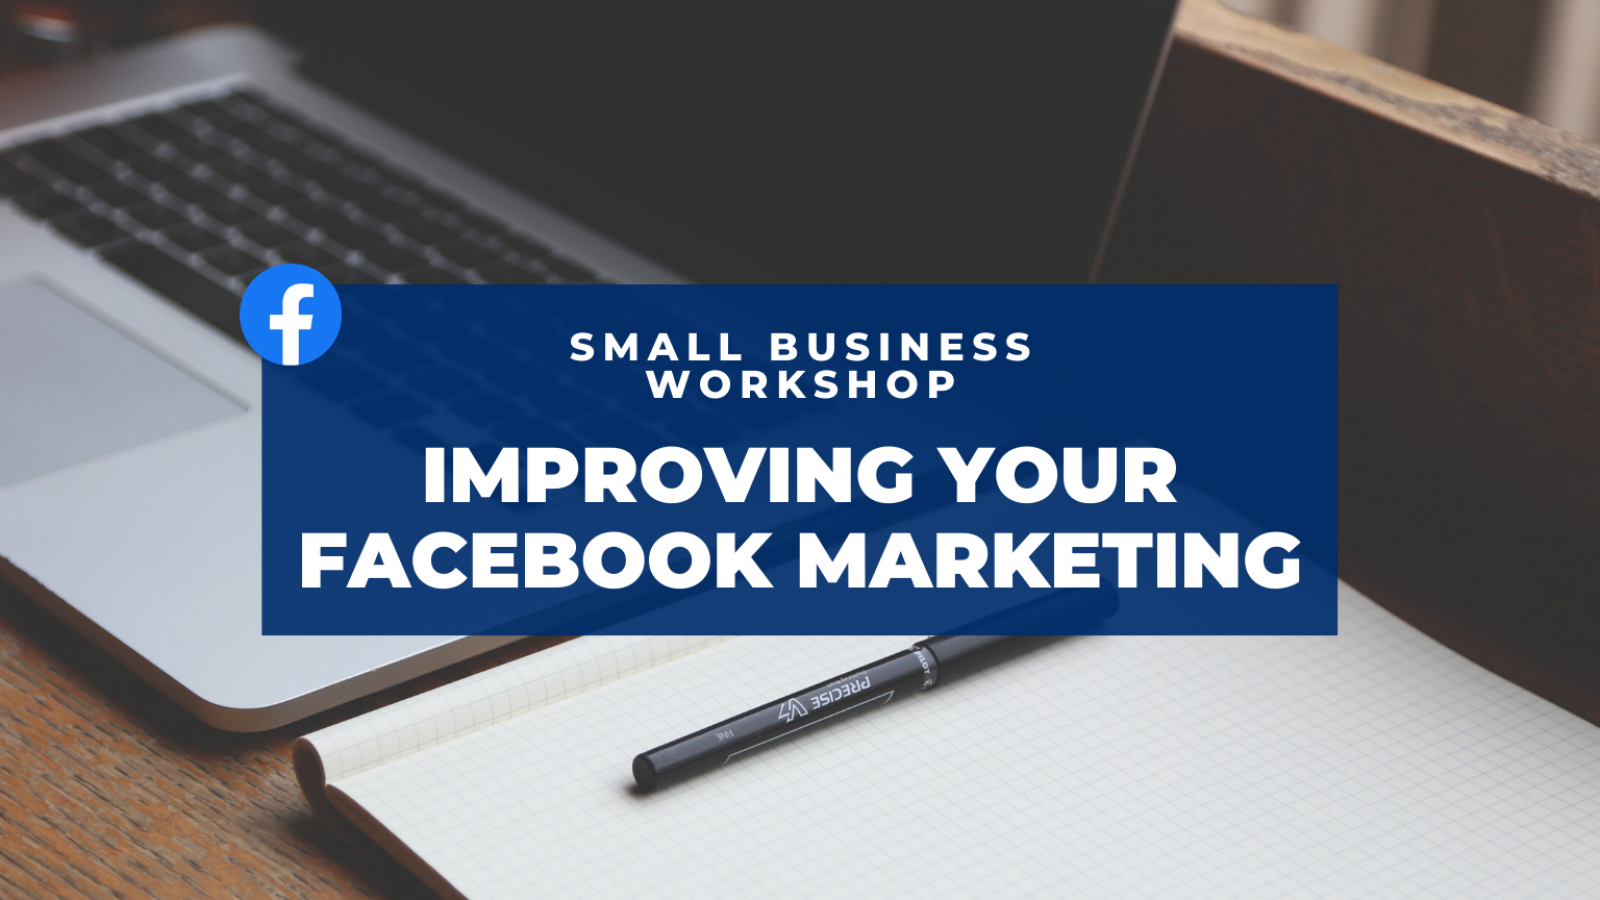 Improving your Facebook Marketing at this Small Business Workshop. Laptop and tablet of paper in background.